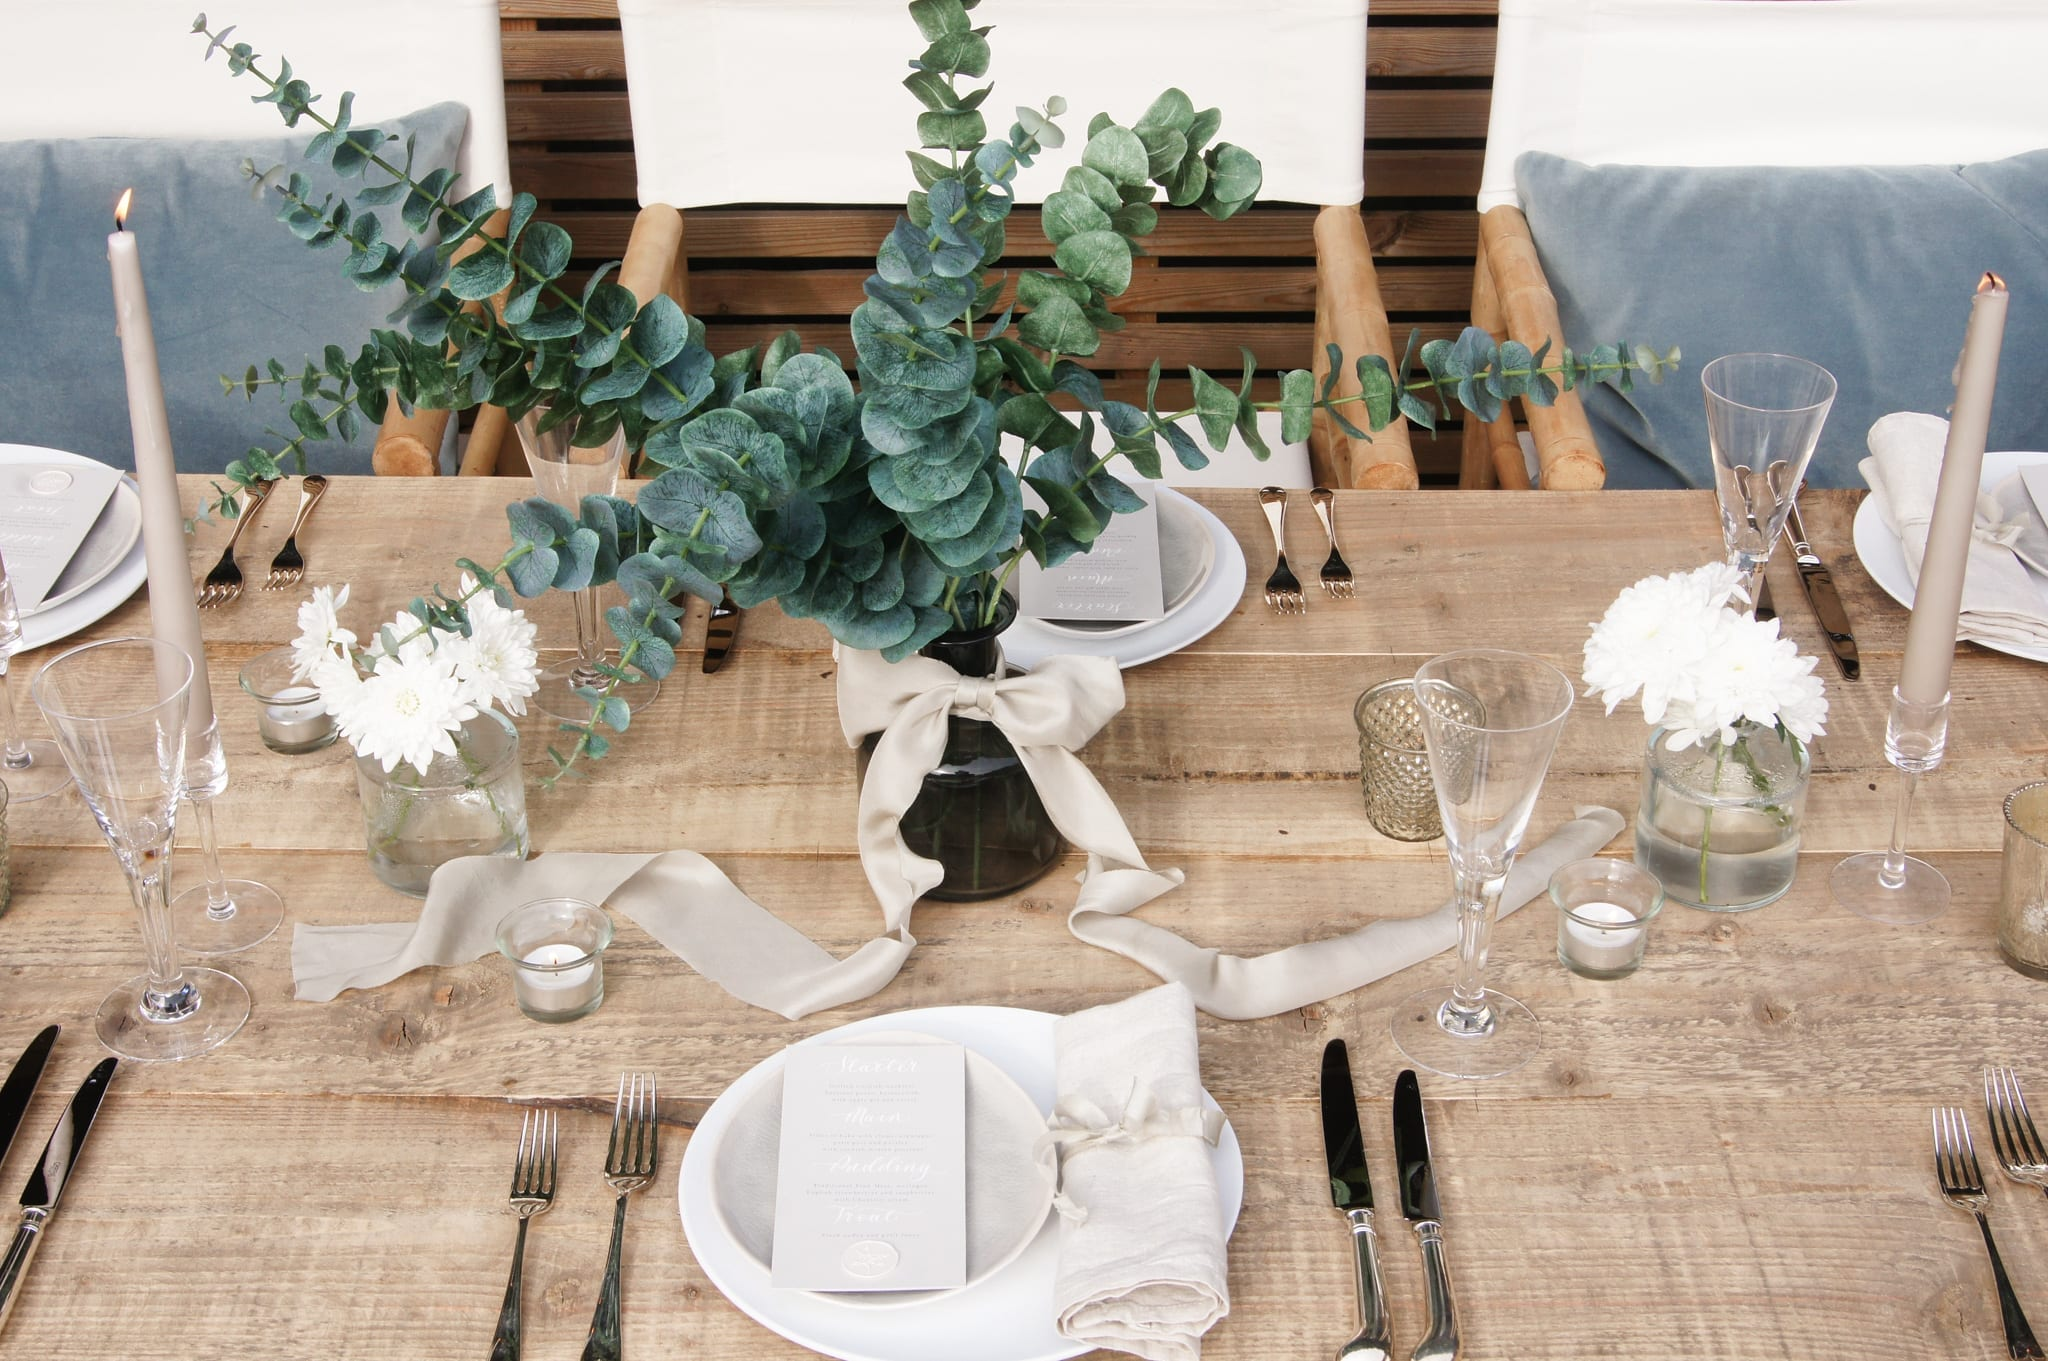 Styling Inspiration with eucalyptus and ribbon